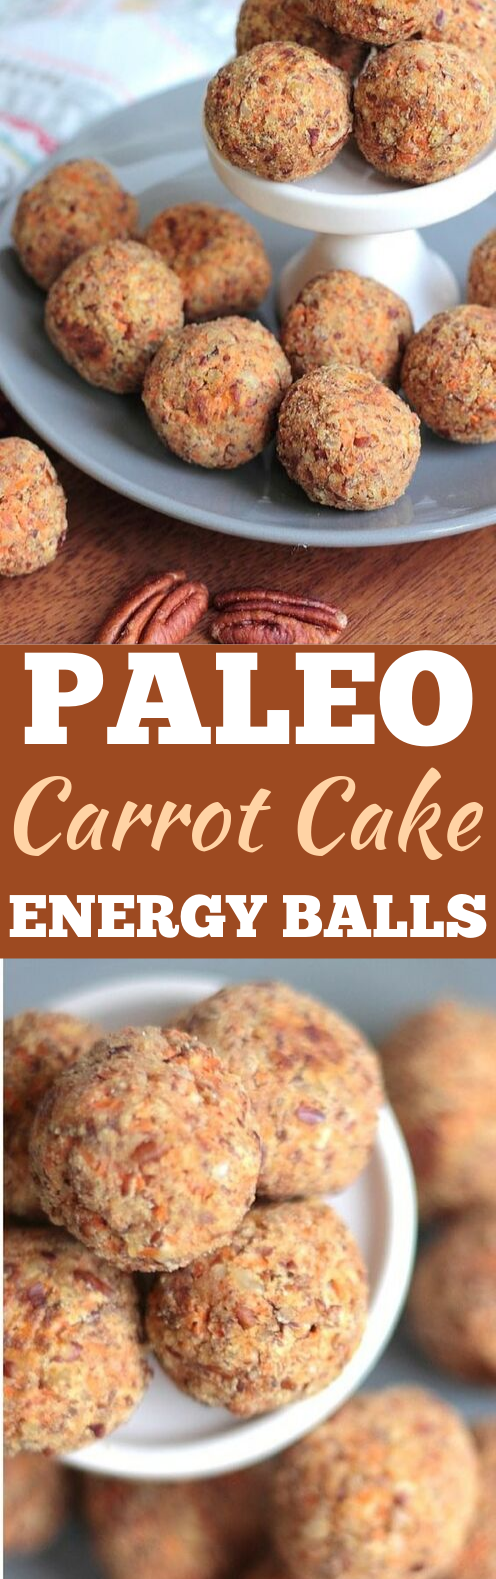 Paleo Carrot Cake Energy Balls #healthy #snacks